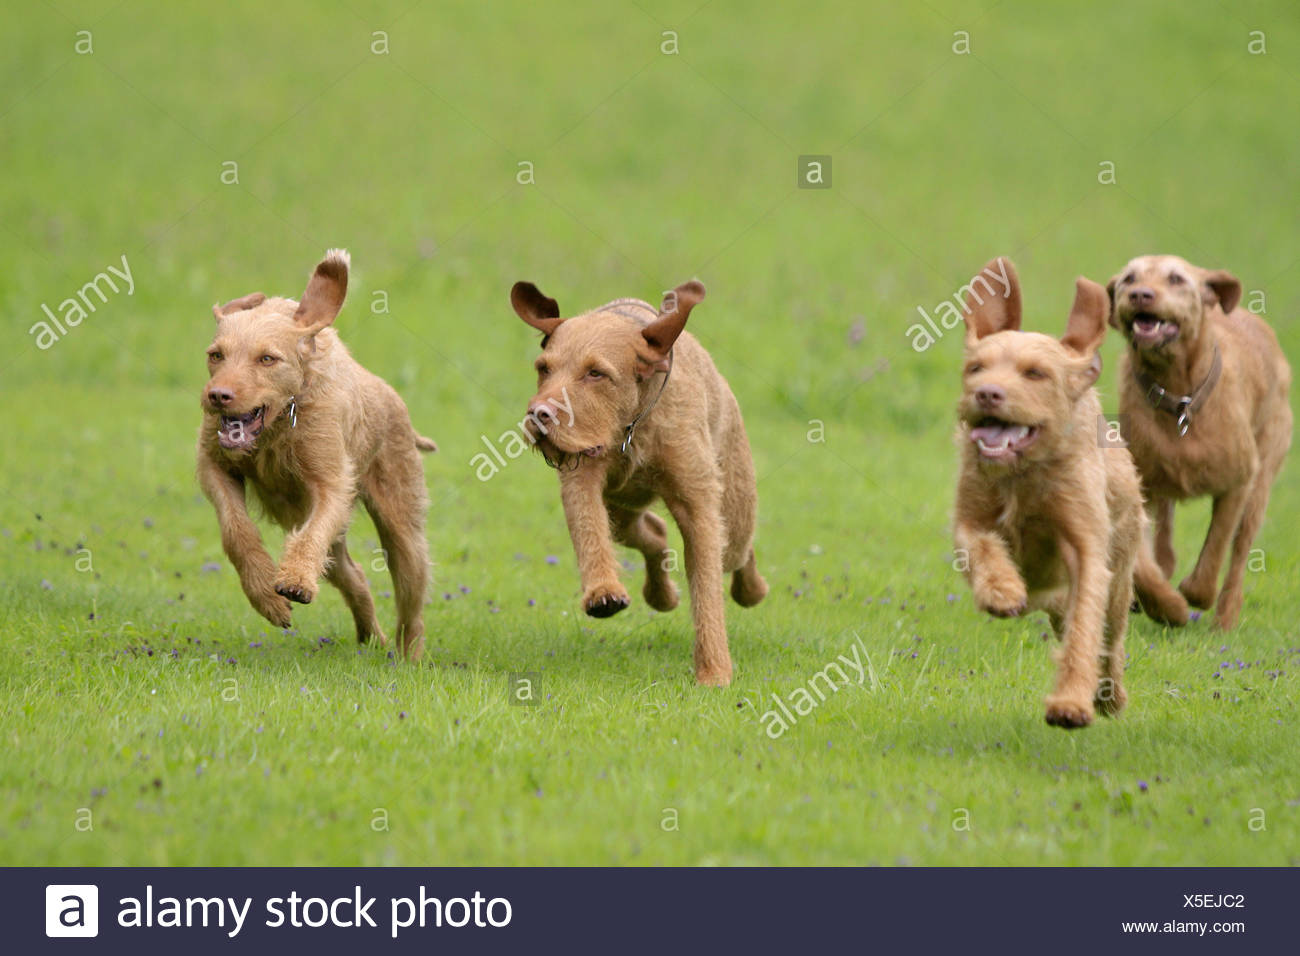 two Wirehaired Magyar Vizsla dogs - running on meadow - Stock Image